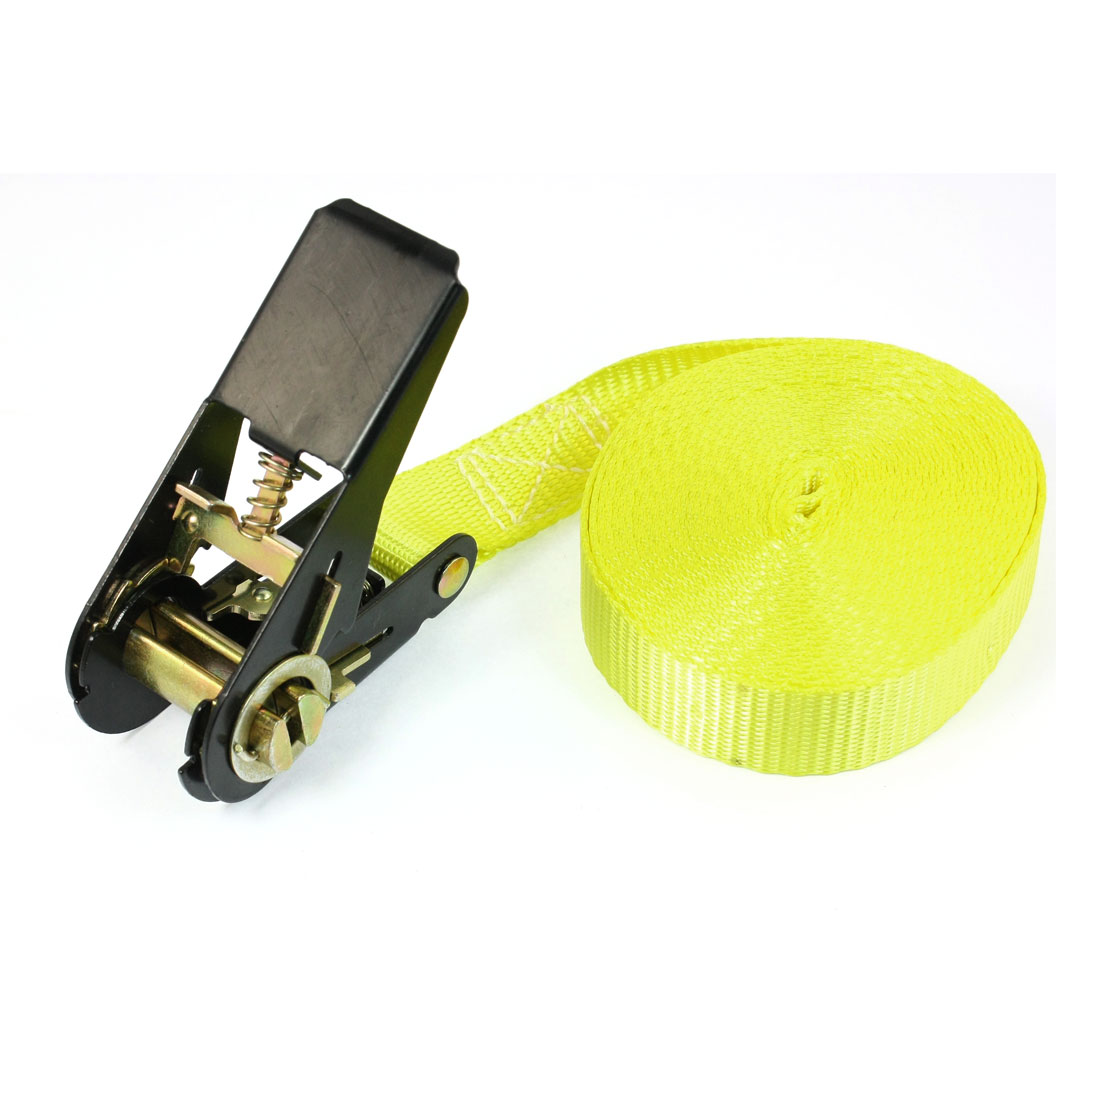 Travel Cargo Binding Band Black Ratchet Tie Down Strap 5M 16ft Yellow